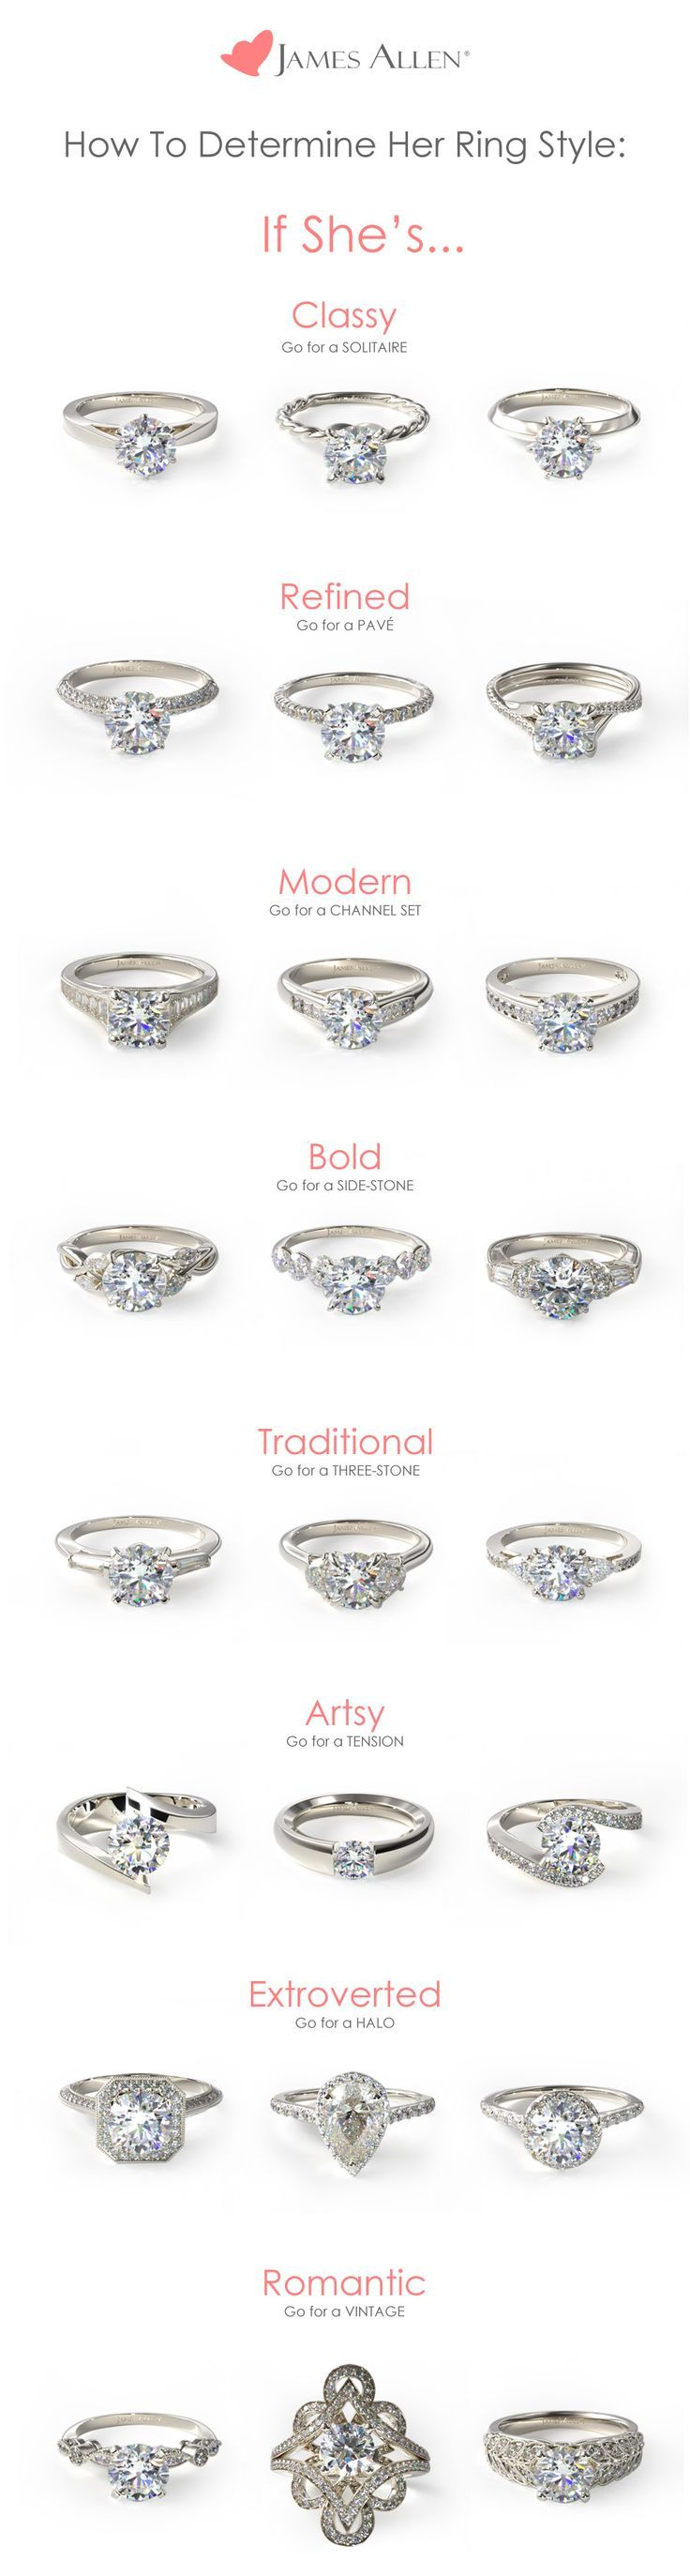 "What type of ring suits her best? This doesn't need to be a guessing game :-)  Find her dream engagement ring: browse certified diamonds and engagement rings in 360° HD <a href=""https://www.jamesallen.com"" rel=""nofollow"" target=""_blank"">www.JamesAllen.com</a> <a class=""pintag searchlink"" data-query=""#jamesallenrings"" data-type=""hashtag"" href=""/search/?q=#jamesallenrings&rs=hashtag"" rel=""nofollow"" title=""#jamesallenrings search Pinterest"">"